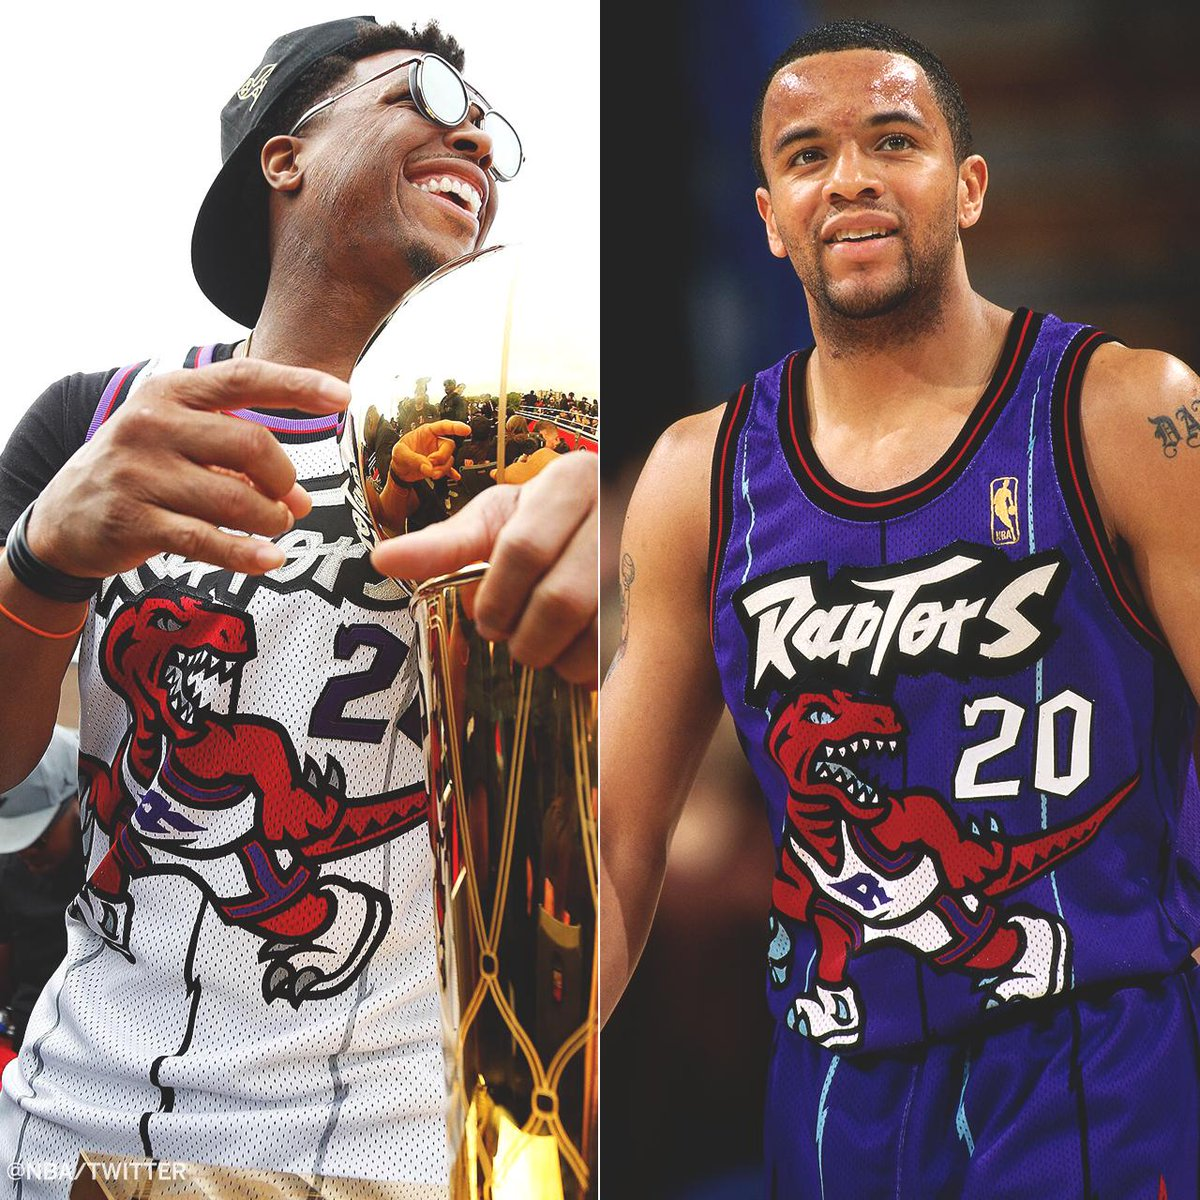 Kyle Lowry wore a throwback Damon Stoudemire jersey at the parade today.  Stoudemire was the first draft pick in Raptors history.